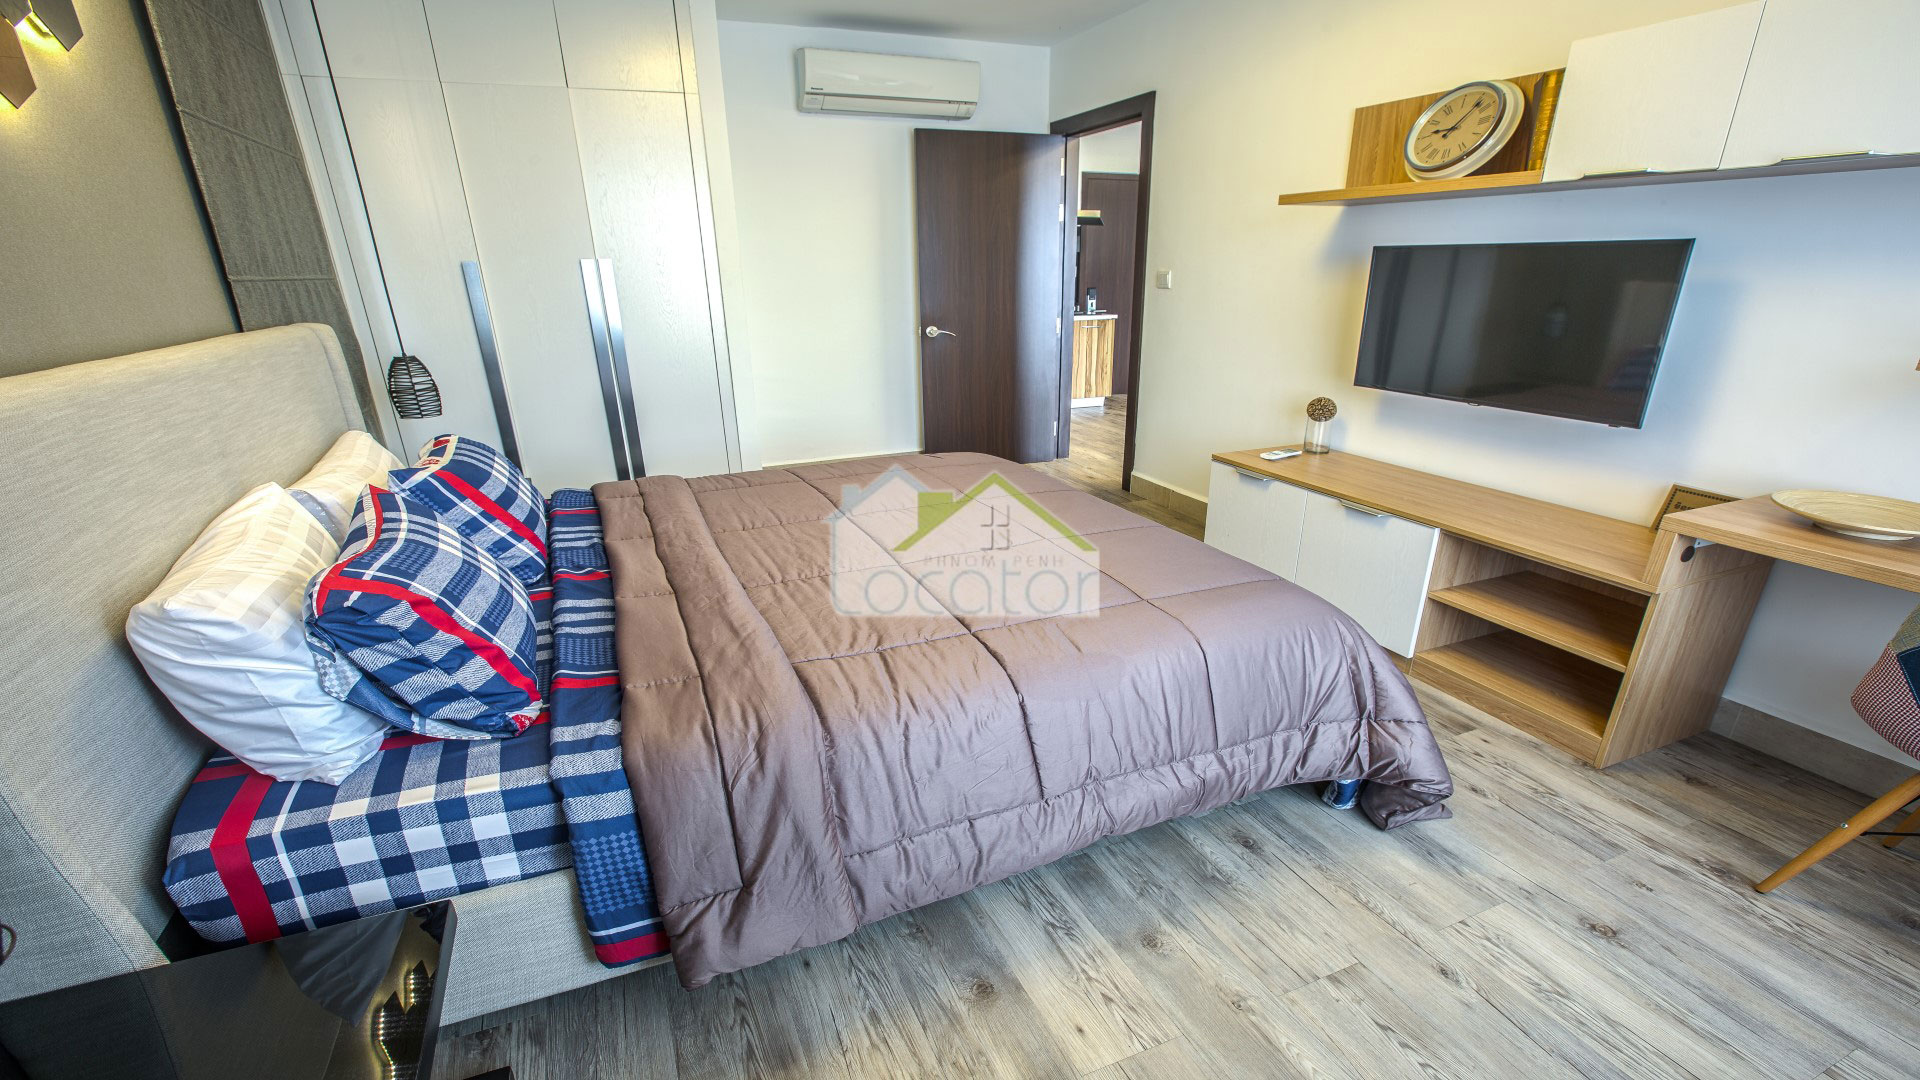 Luxury 02 Bedroom with 01 Bing Livingroom For small family Serviced Apartment for Sale or Rent